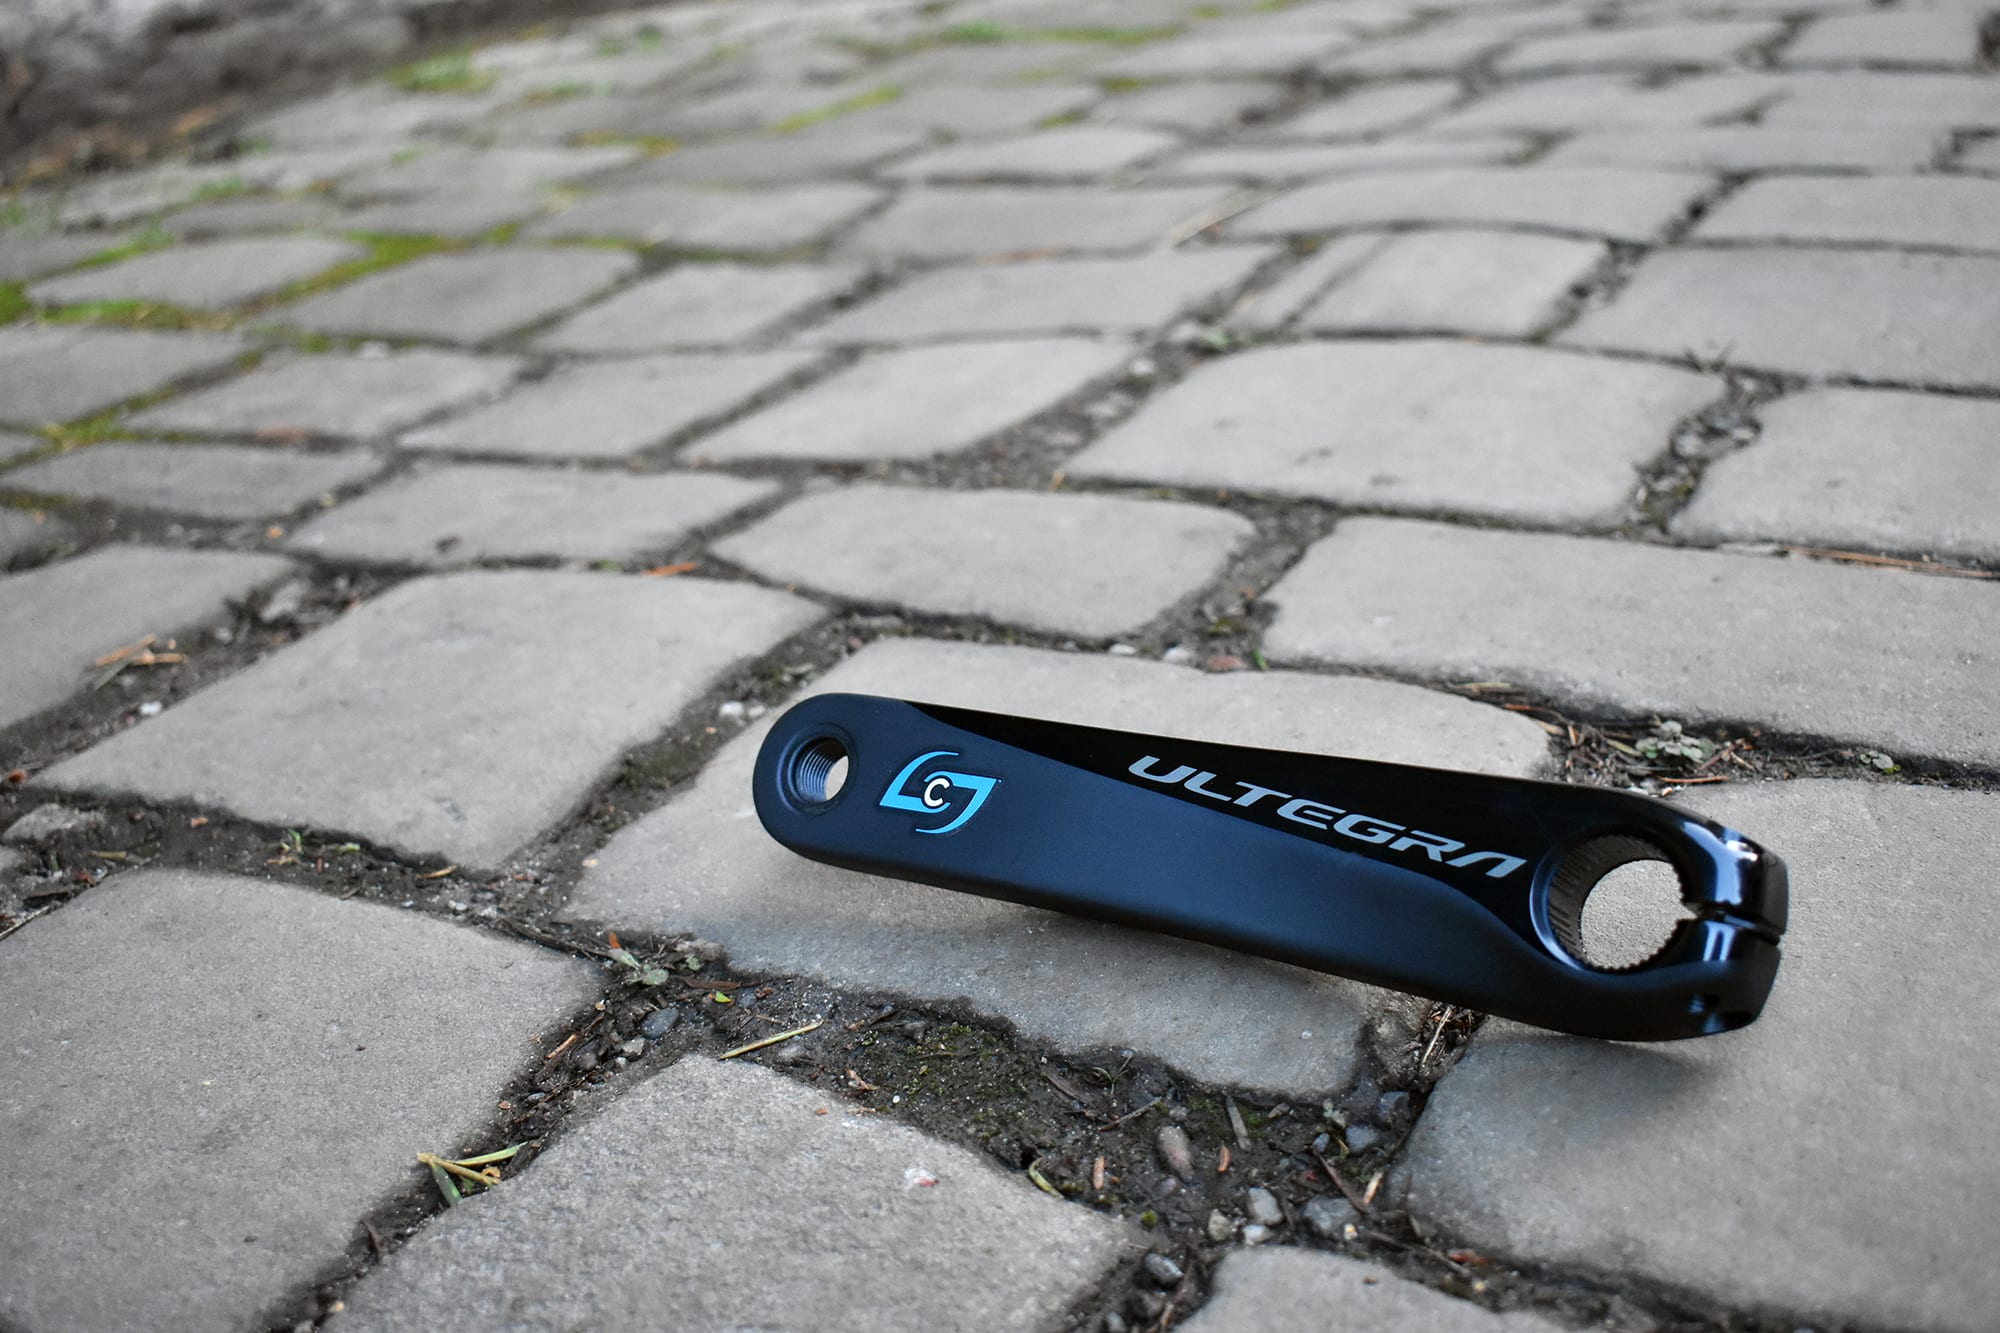 a stages cycling Generation 3 power meter on the ground